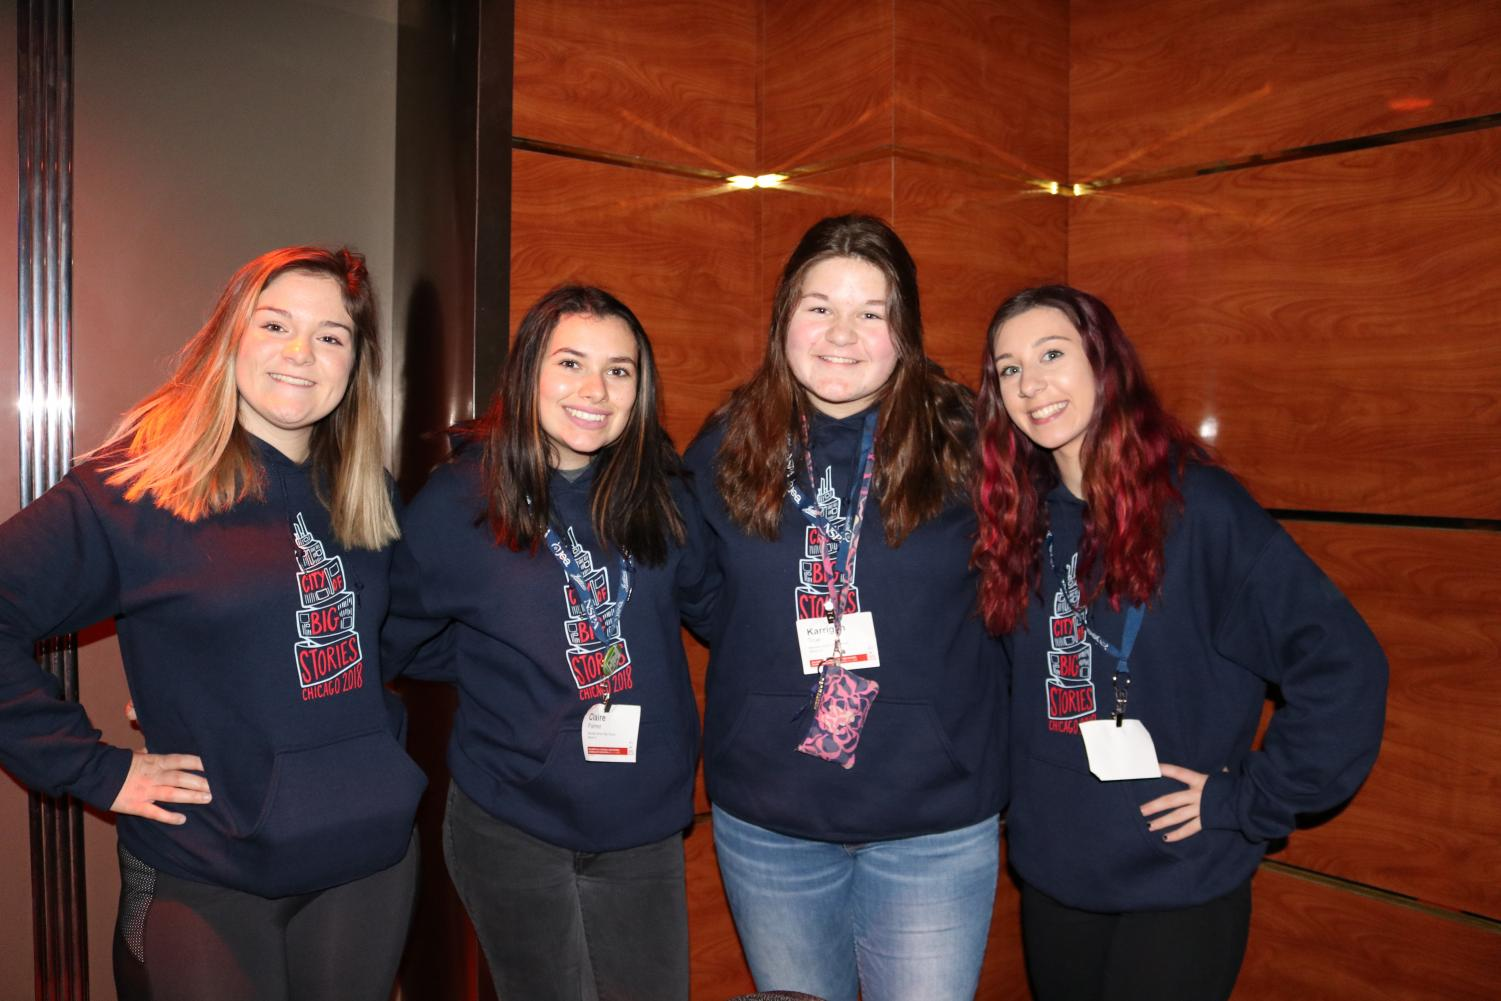 A trip to Chicago. Sydney Moore, Claire Palmer, Karrigan True, Amber Miller, and Sheila Moore go to the SNL Experience in Chicago, IL. They got the opportunity to do this while at the Journalism National Convention on Friday, November 2.